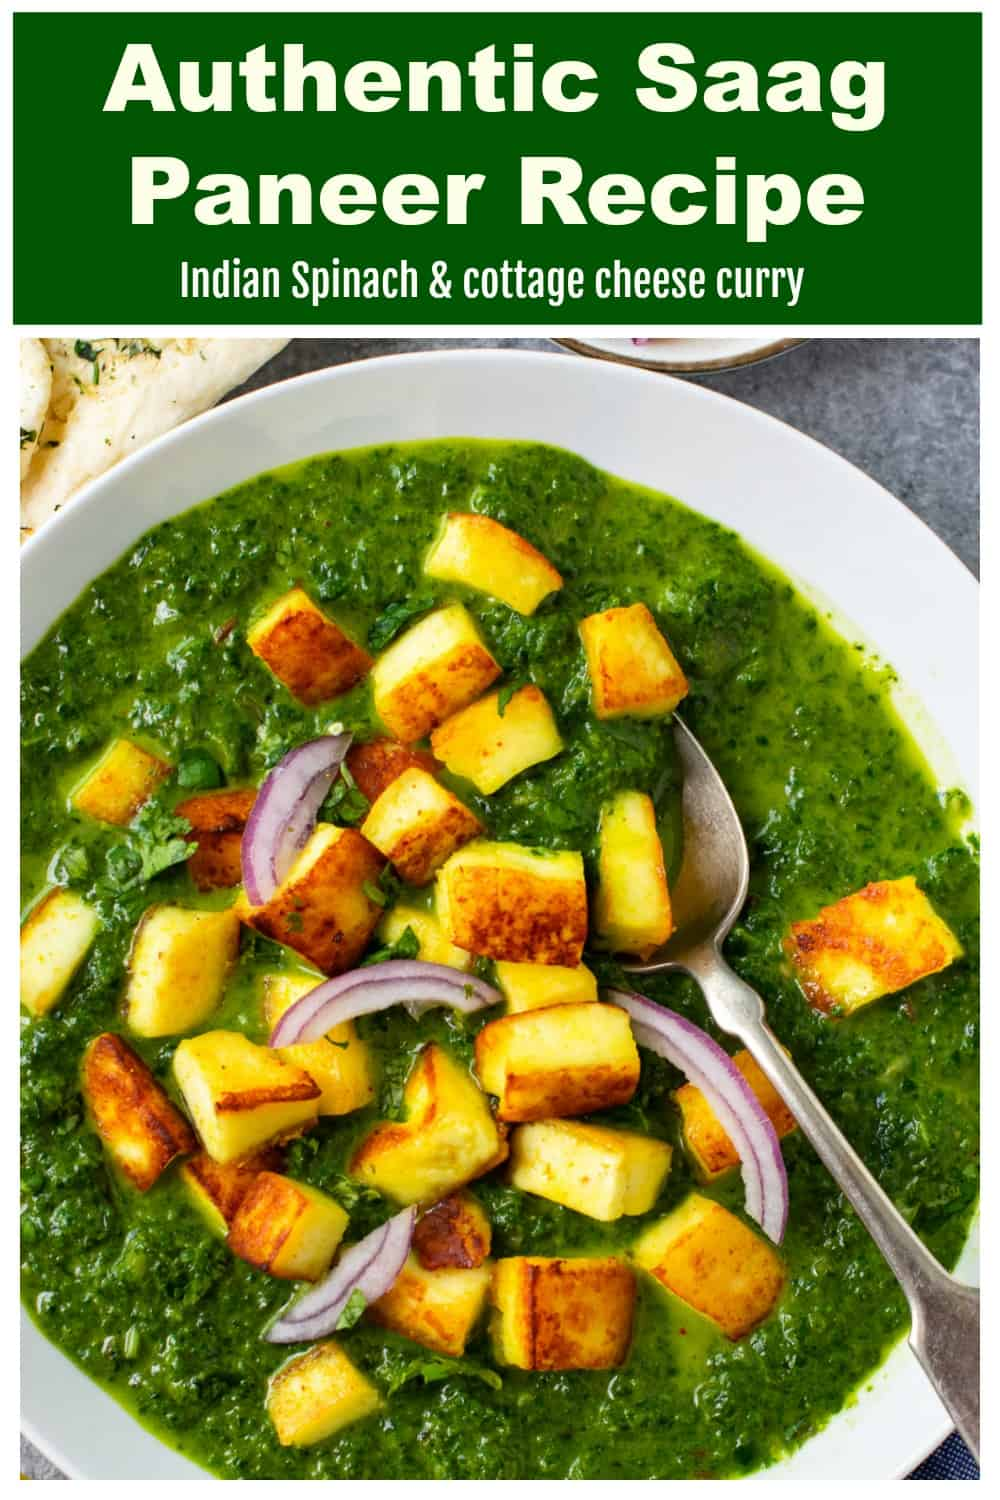 Indian spinach and cottage cheese curry in a white bowl